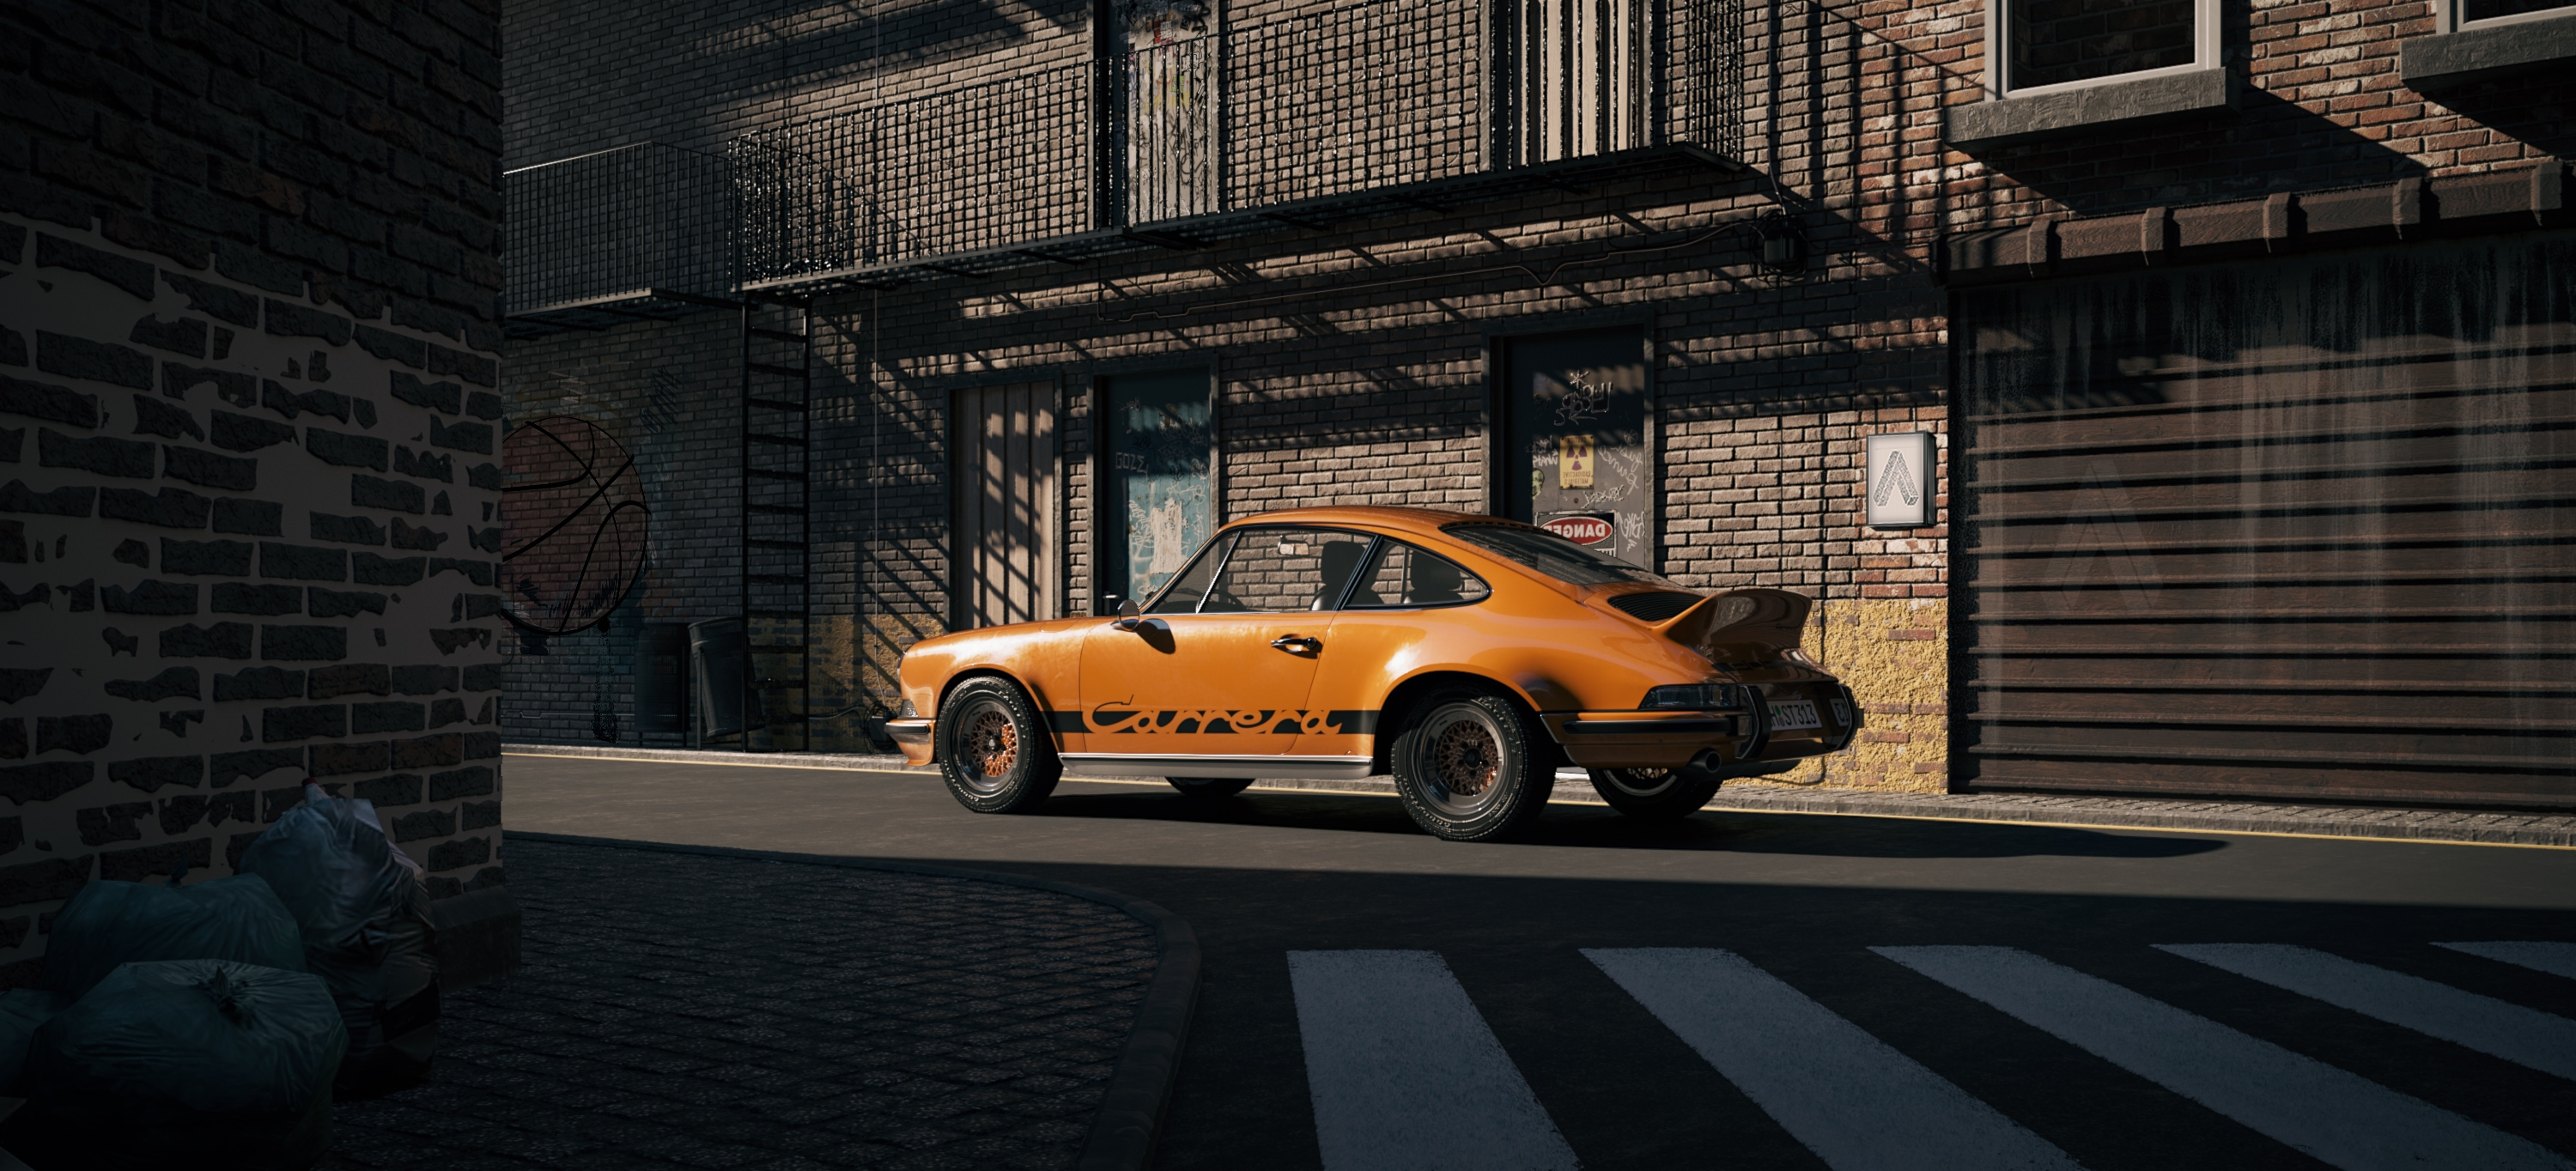 One day in suburbia - Porsche 911 RS 3d art